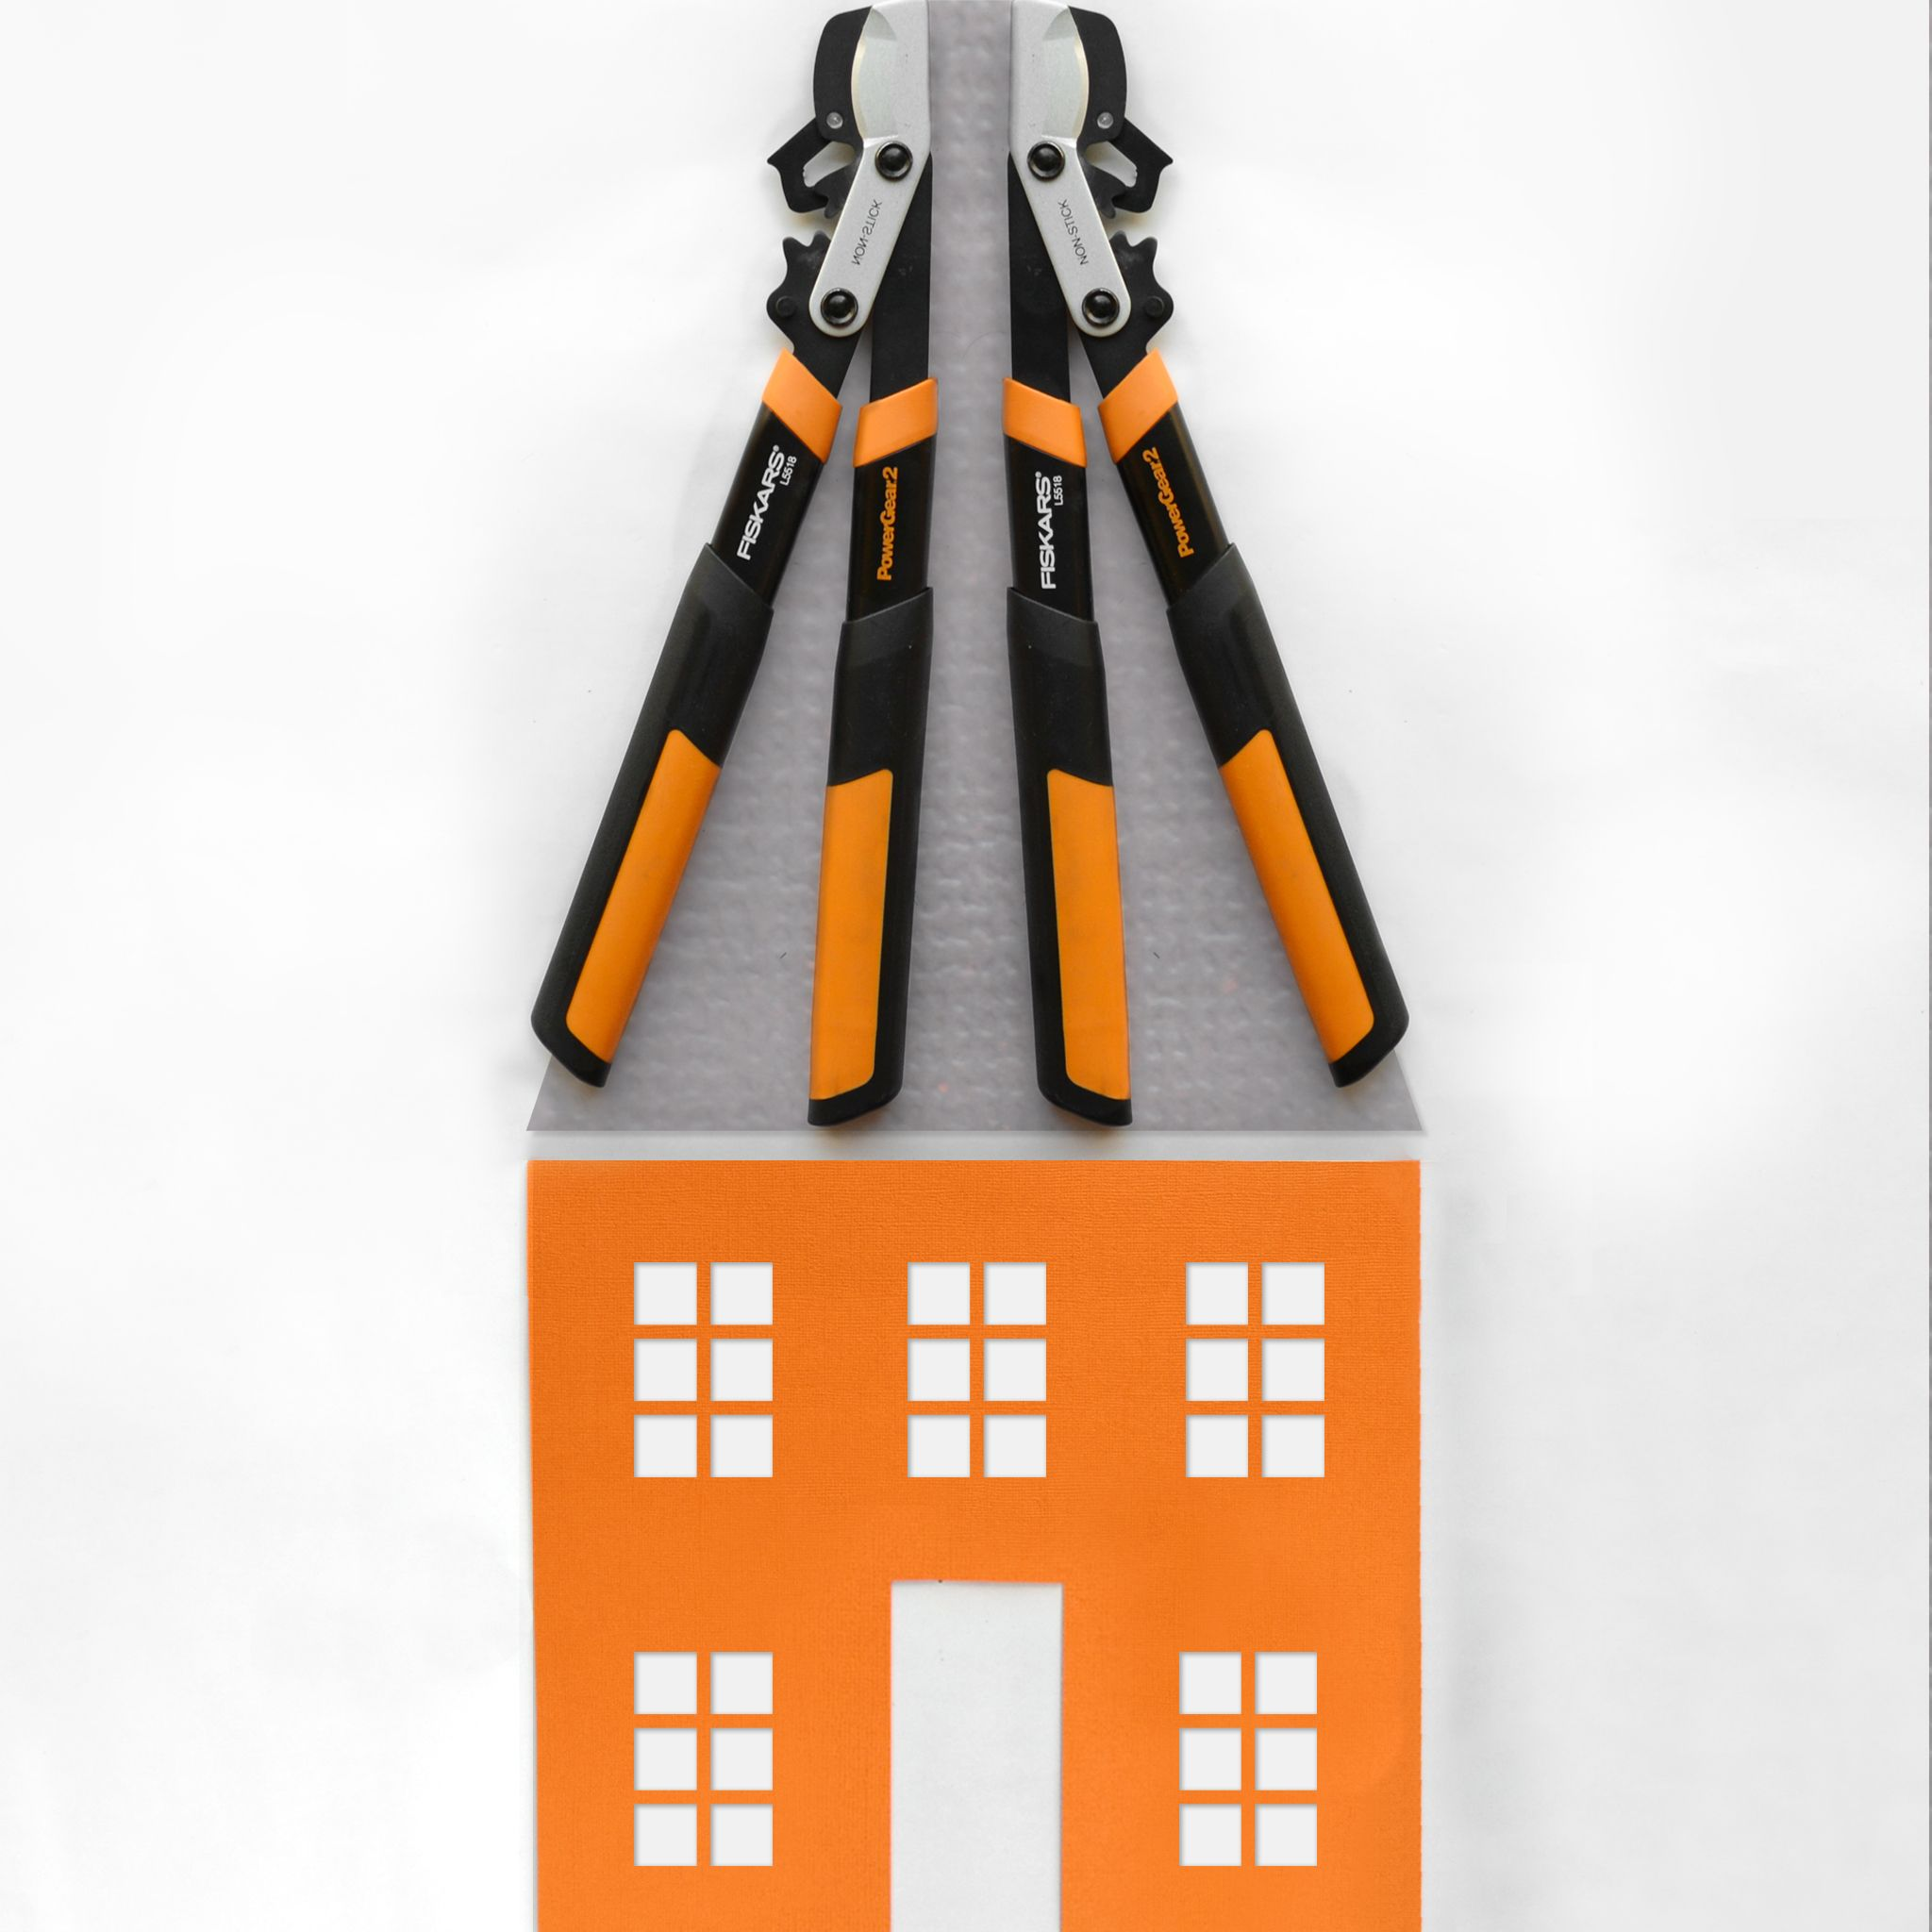 PowerGear2 tools would make a great housewarming gift for those first-time homeowners.